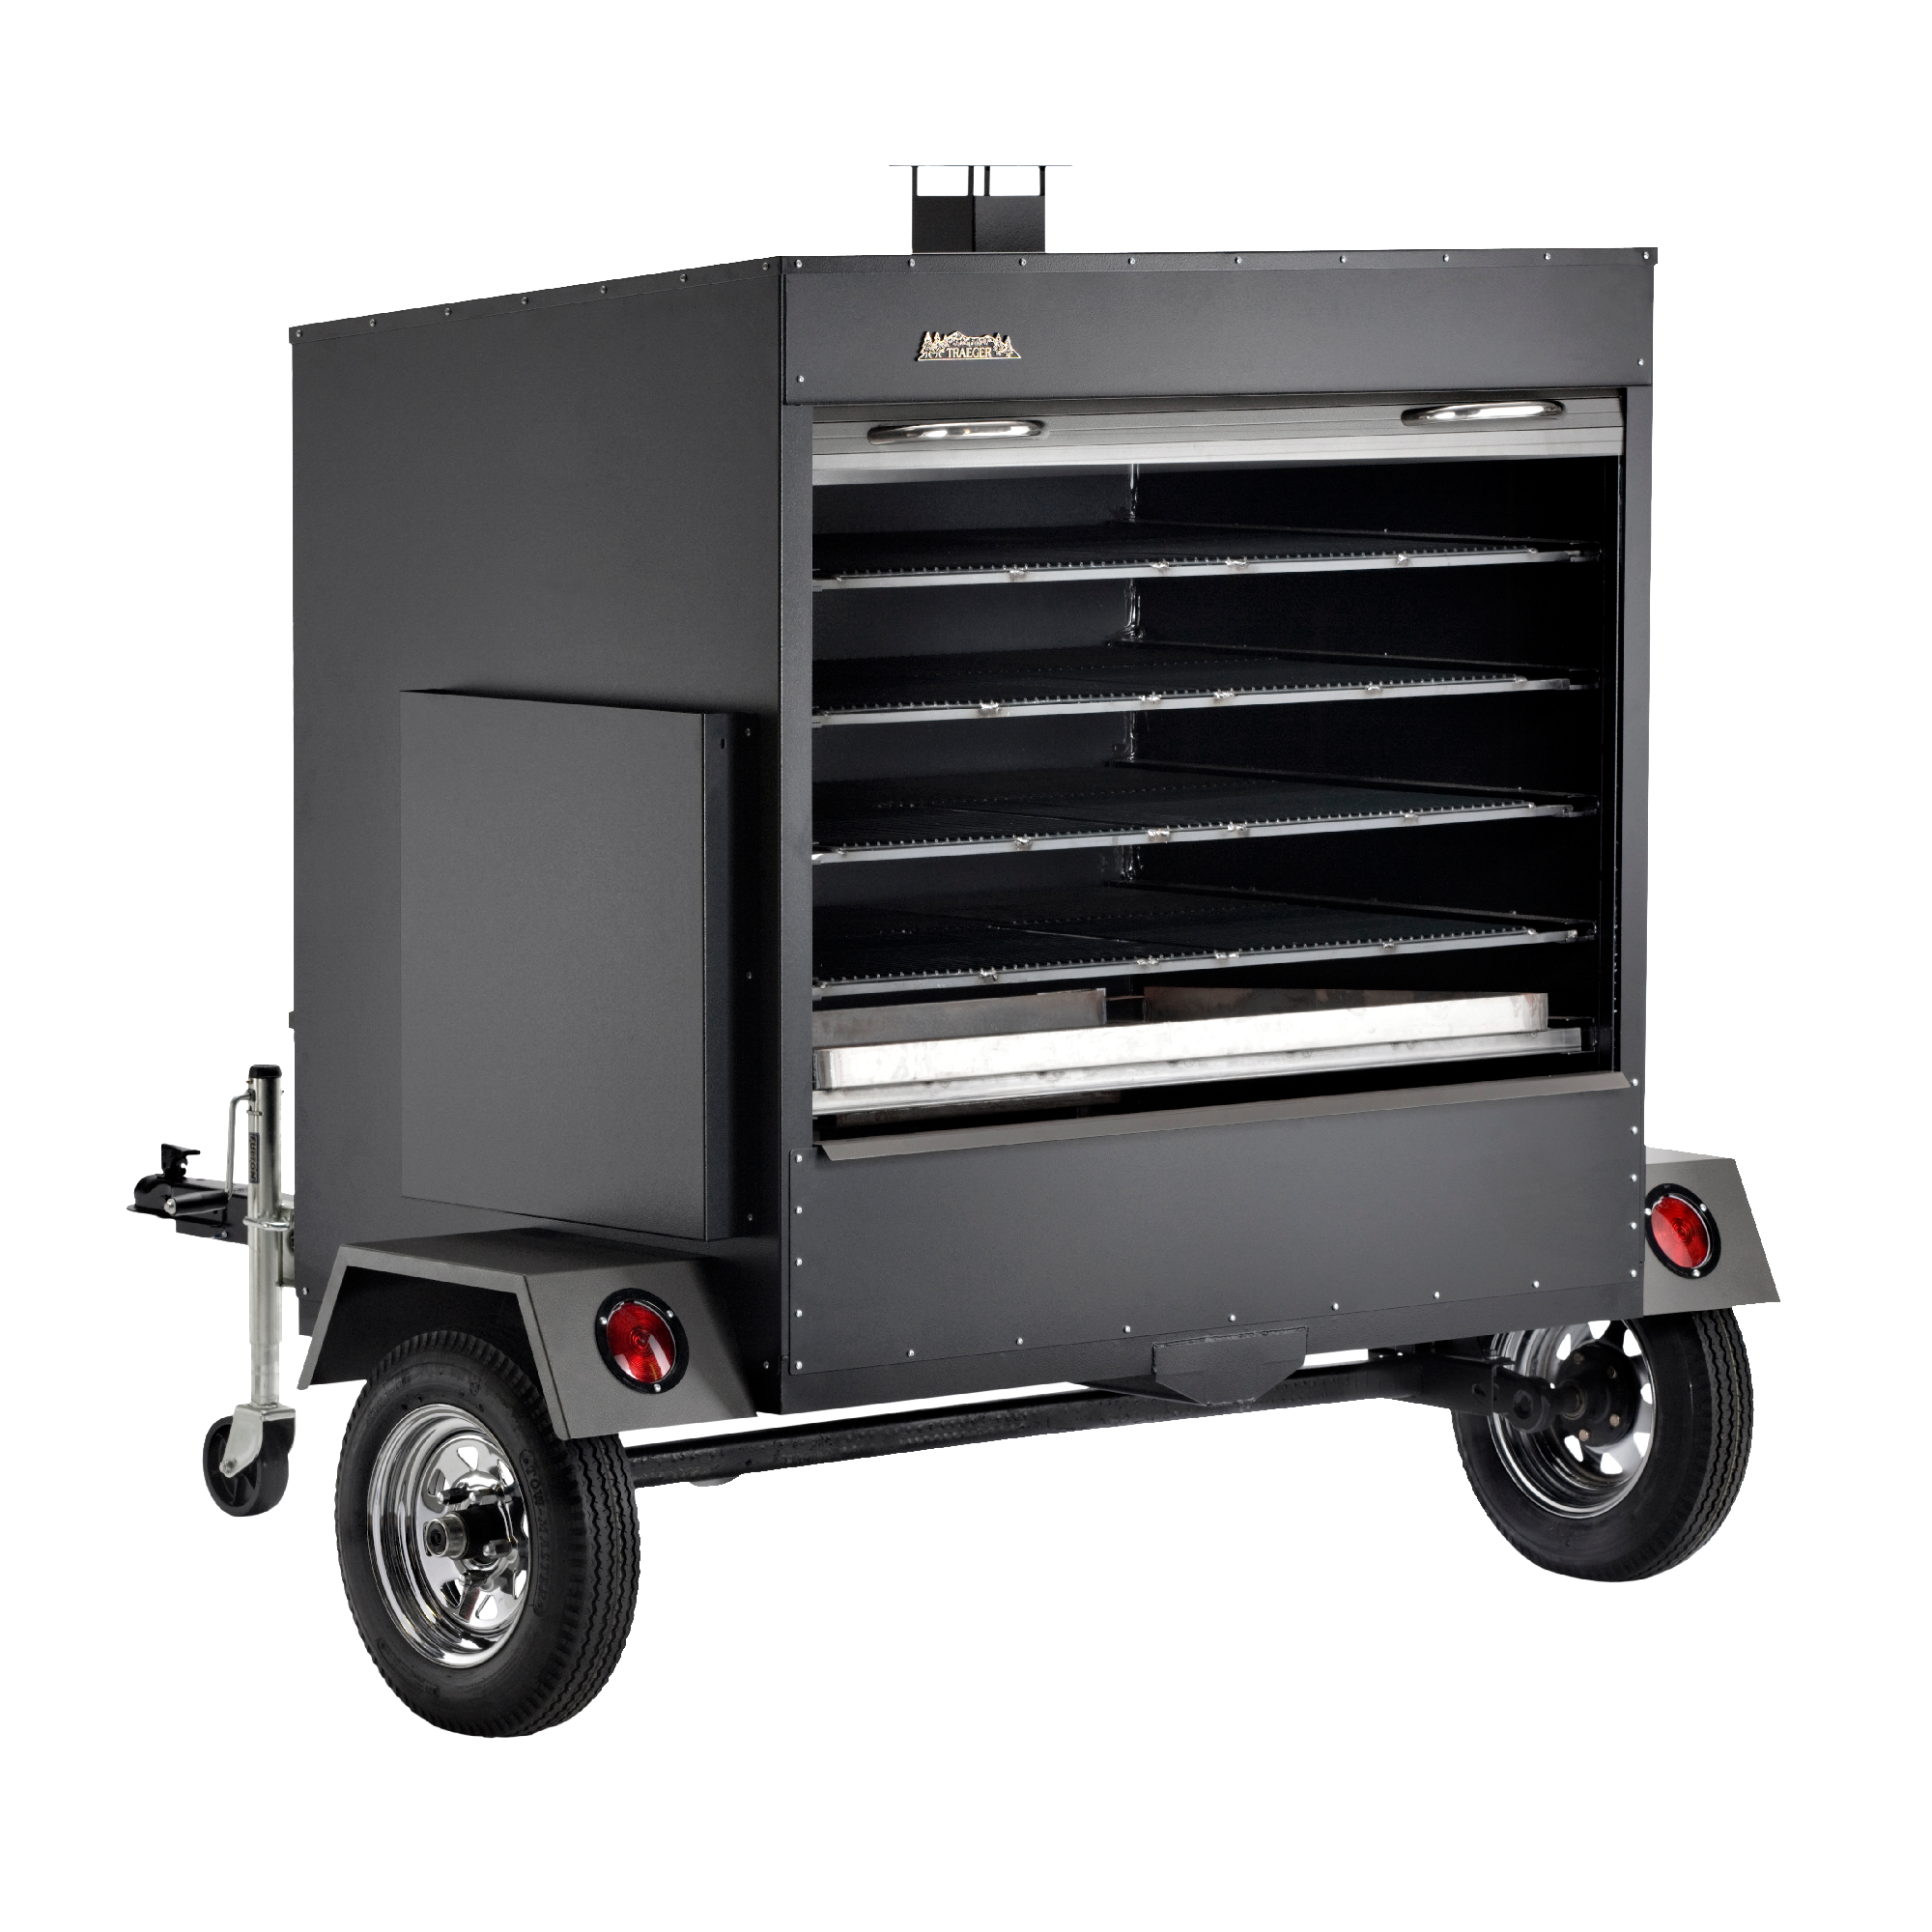 large commercial grill trailer - Traeger Grill Reviews